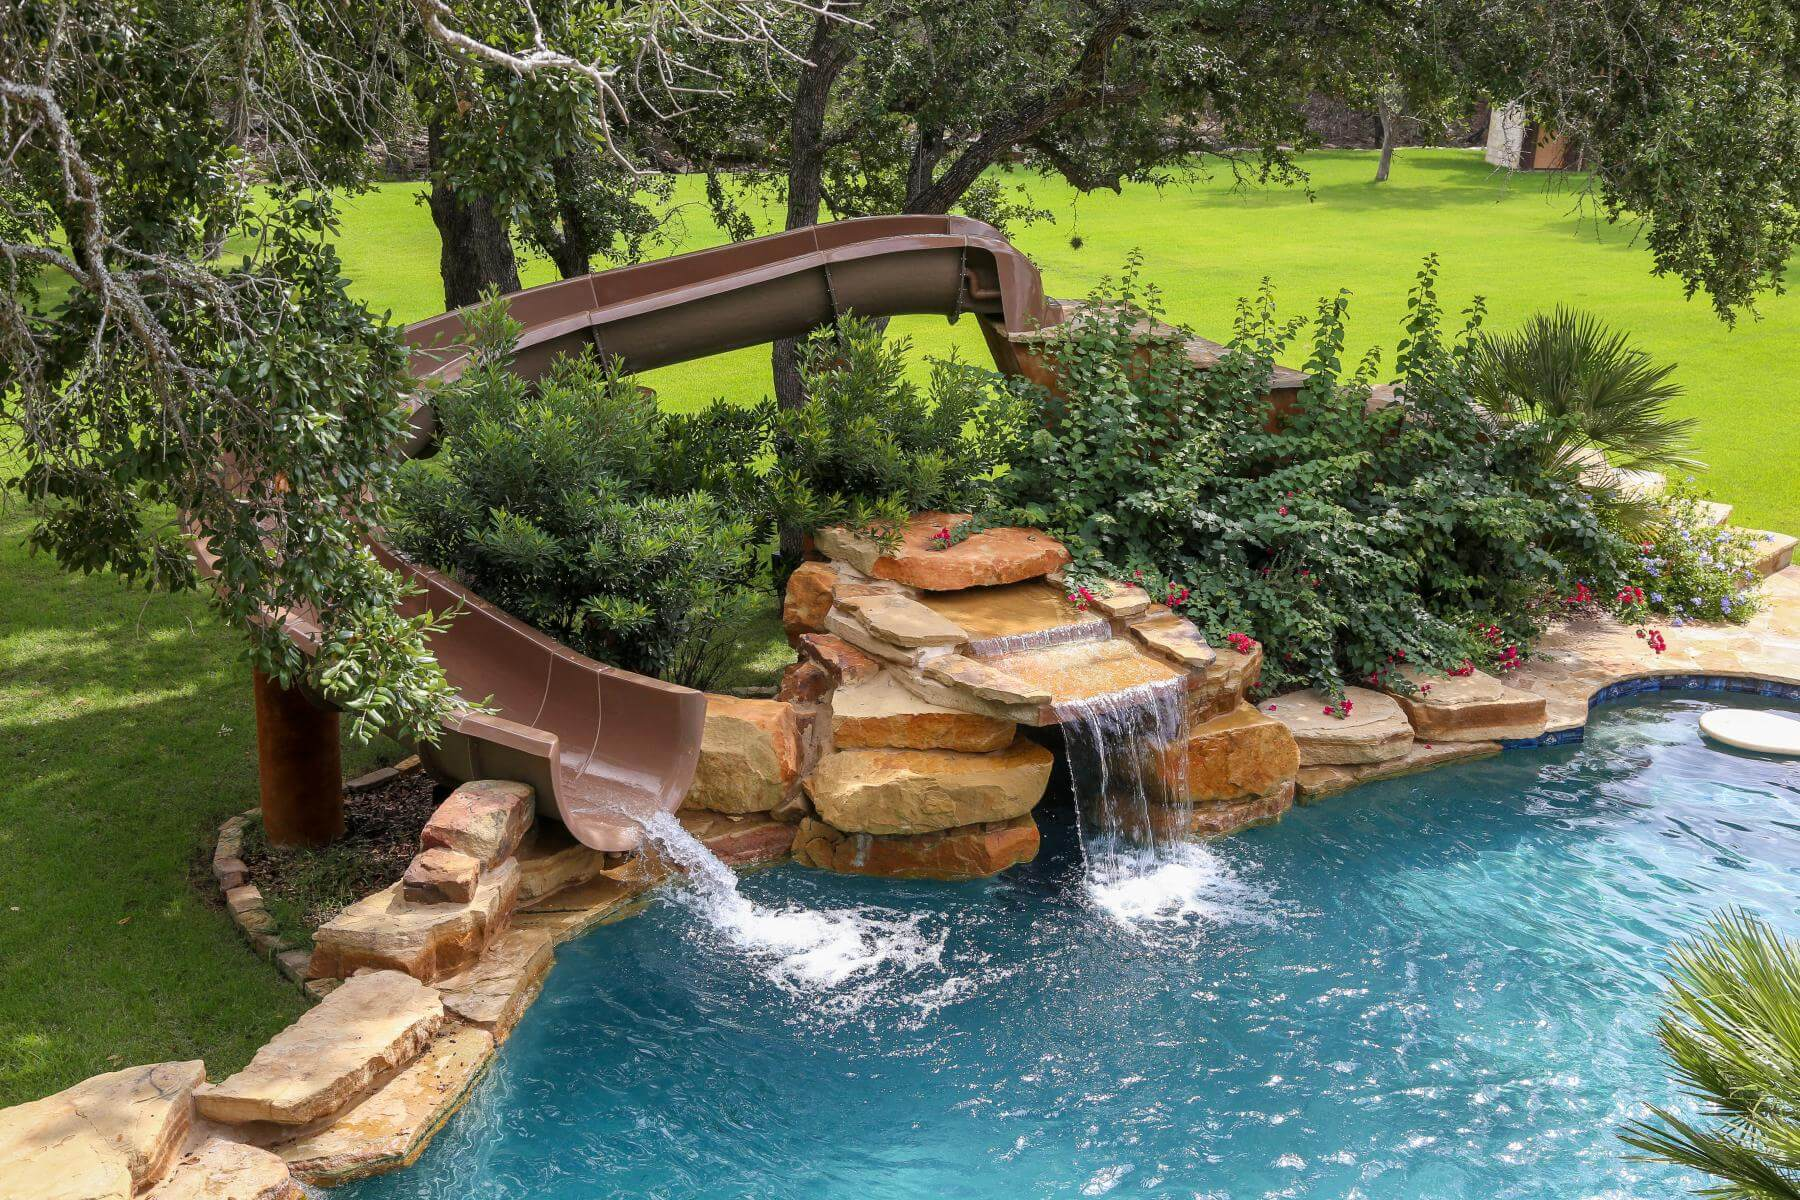 How Much Does A Custom Pool Cost? | Keith Zars Pools San Antonio